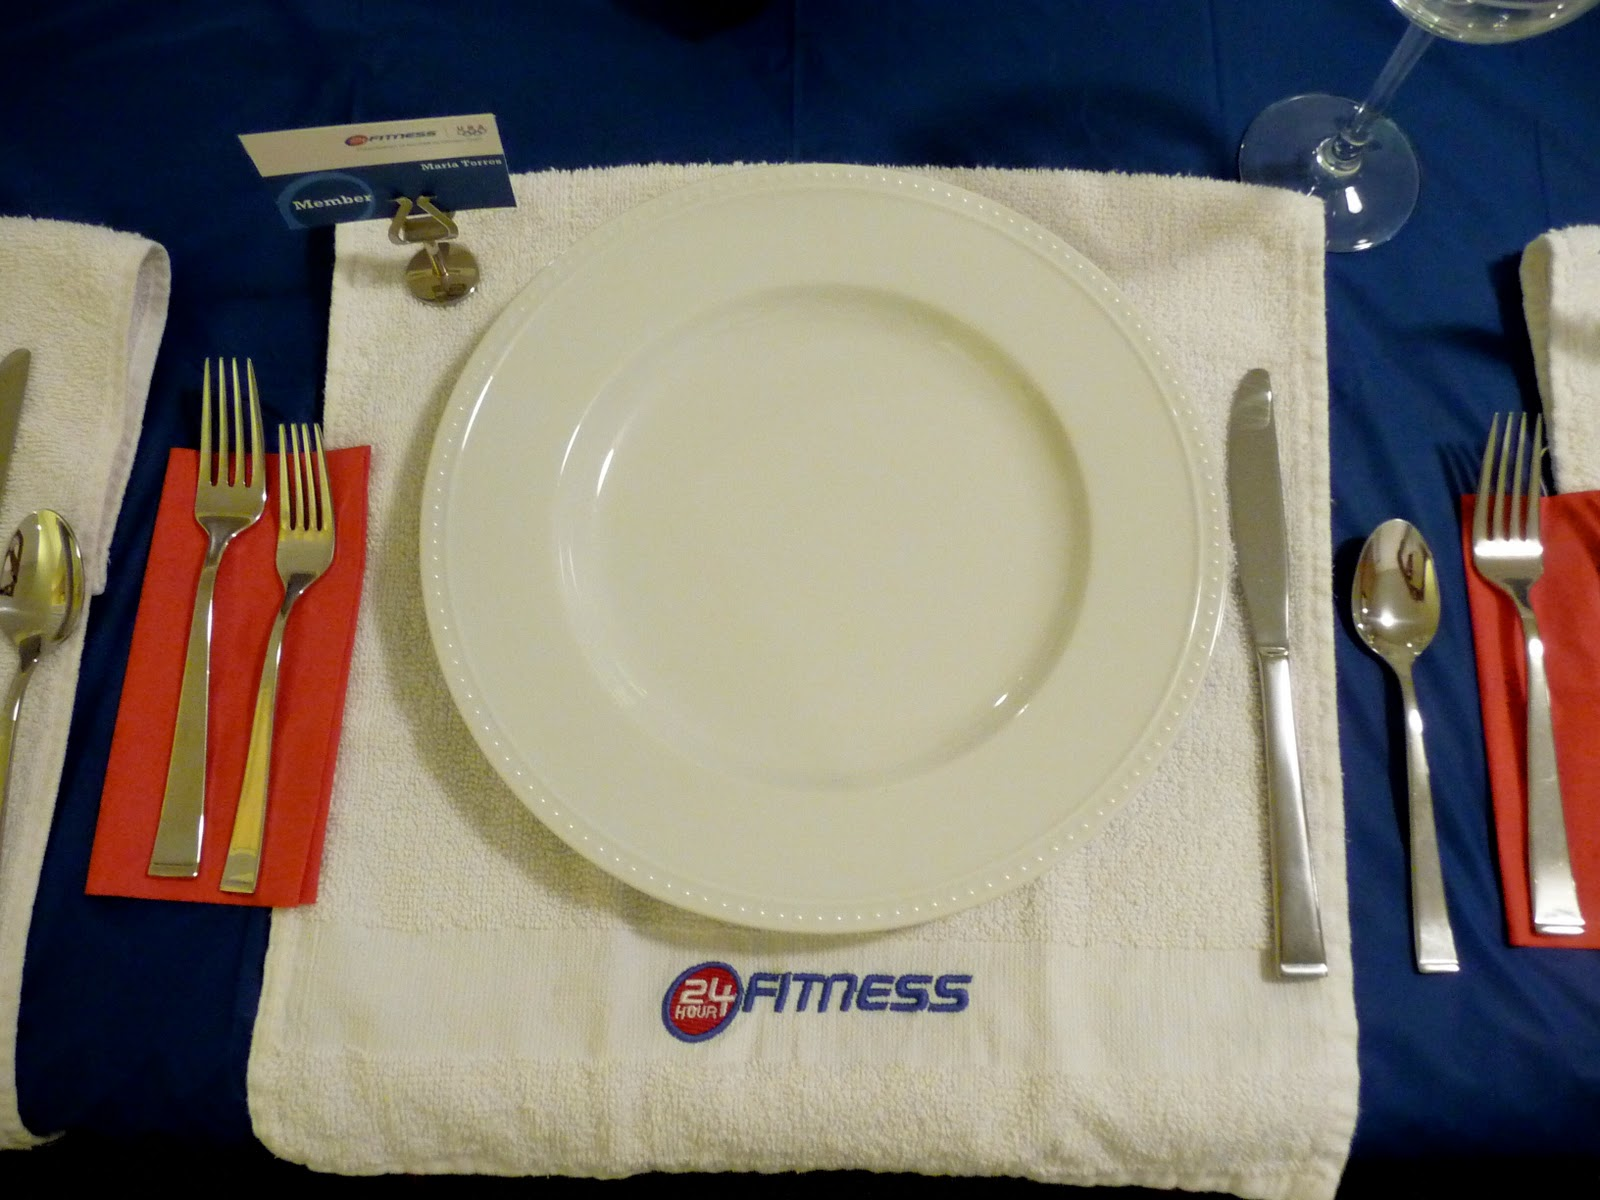 Invite and delight: a little fun with fitness